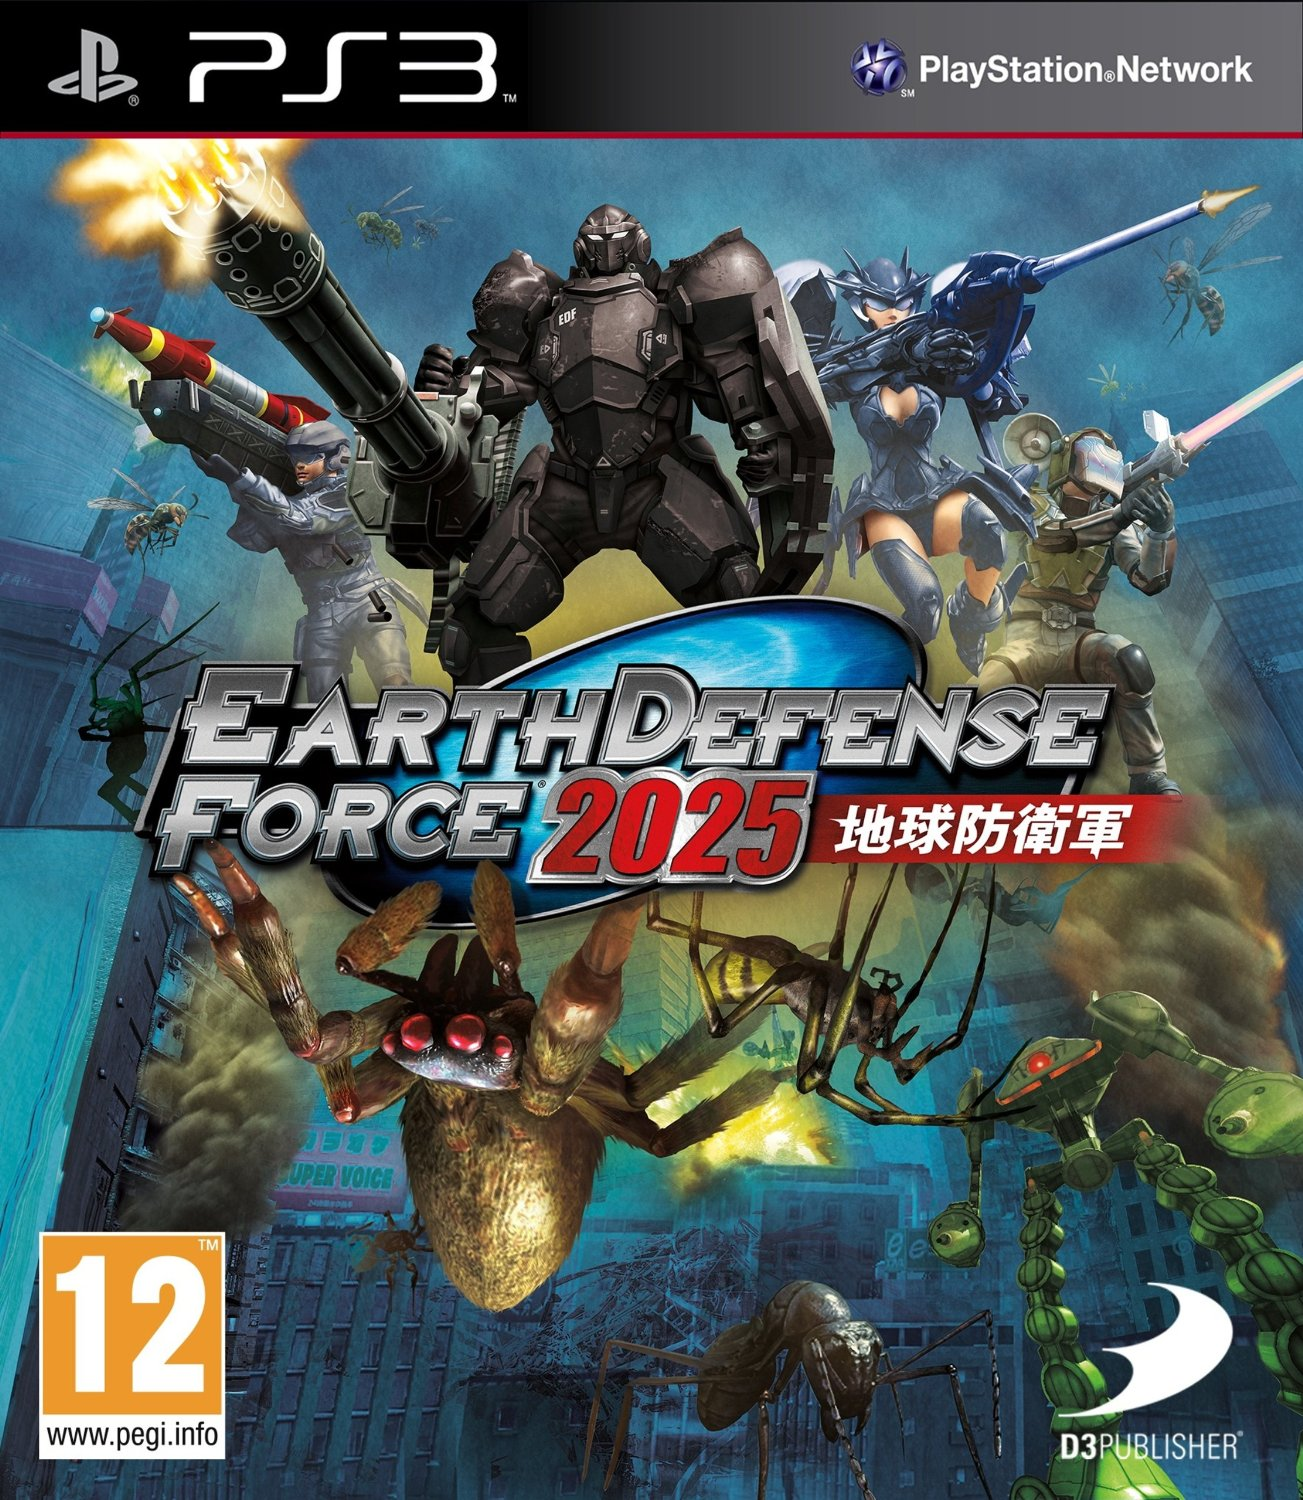 Boîte de Earth Defense Force 2025